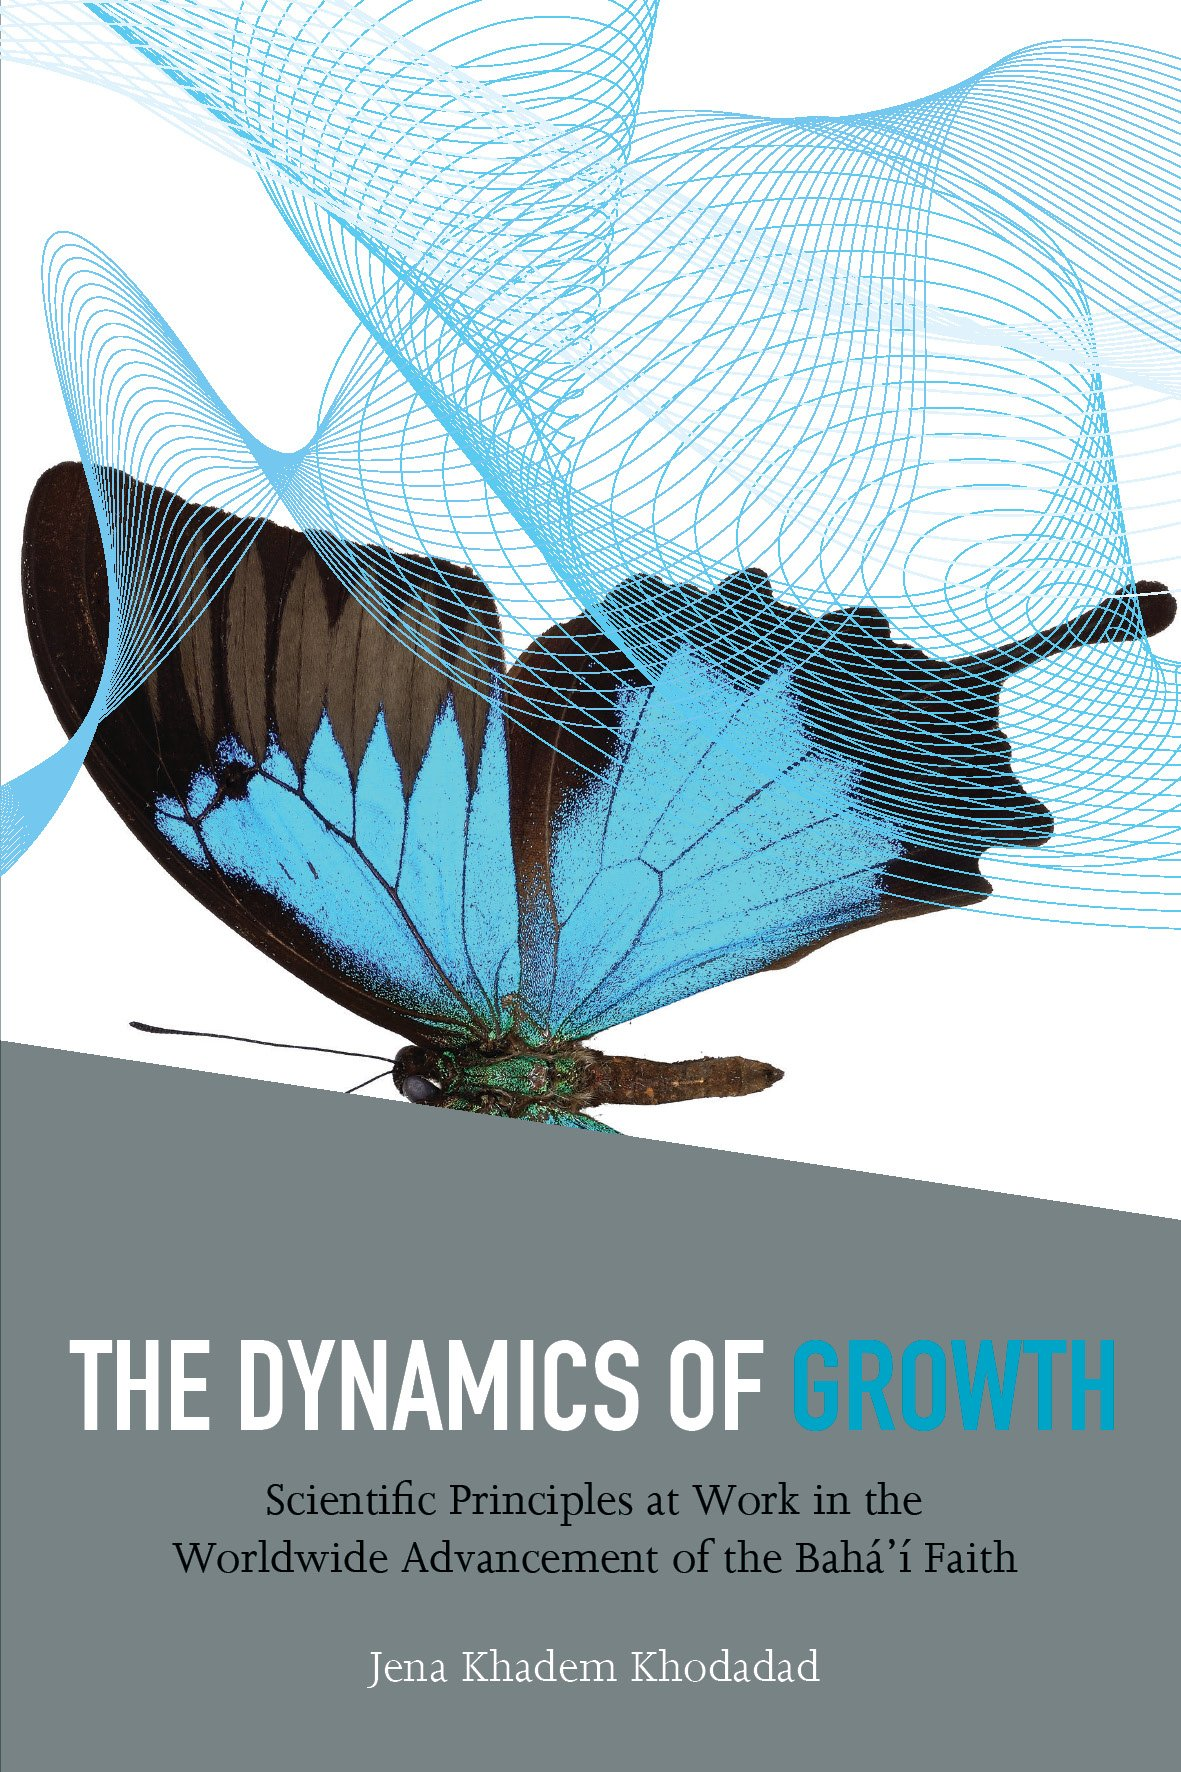 The Dynamics Of Growth: Scientific Principles at Work in the Worldwide Advancement of the Bahai Faith